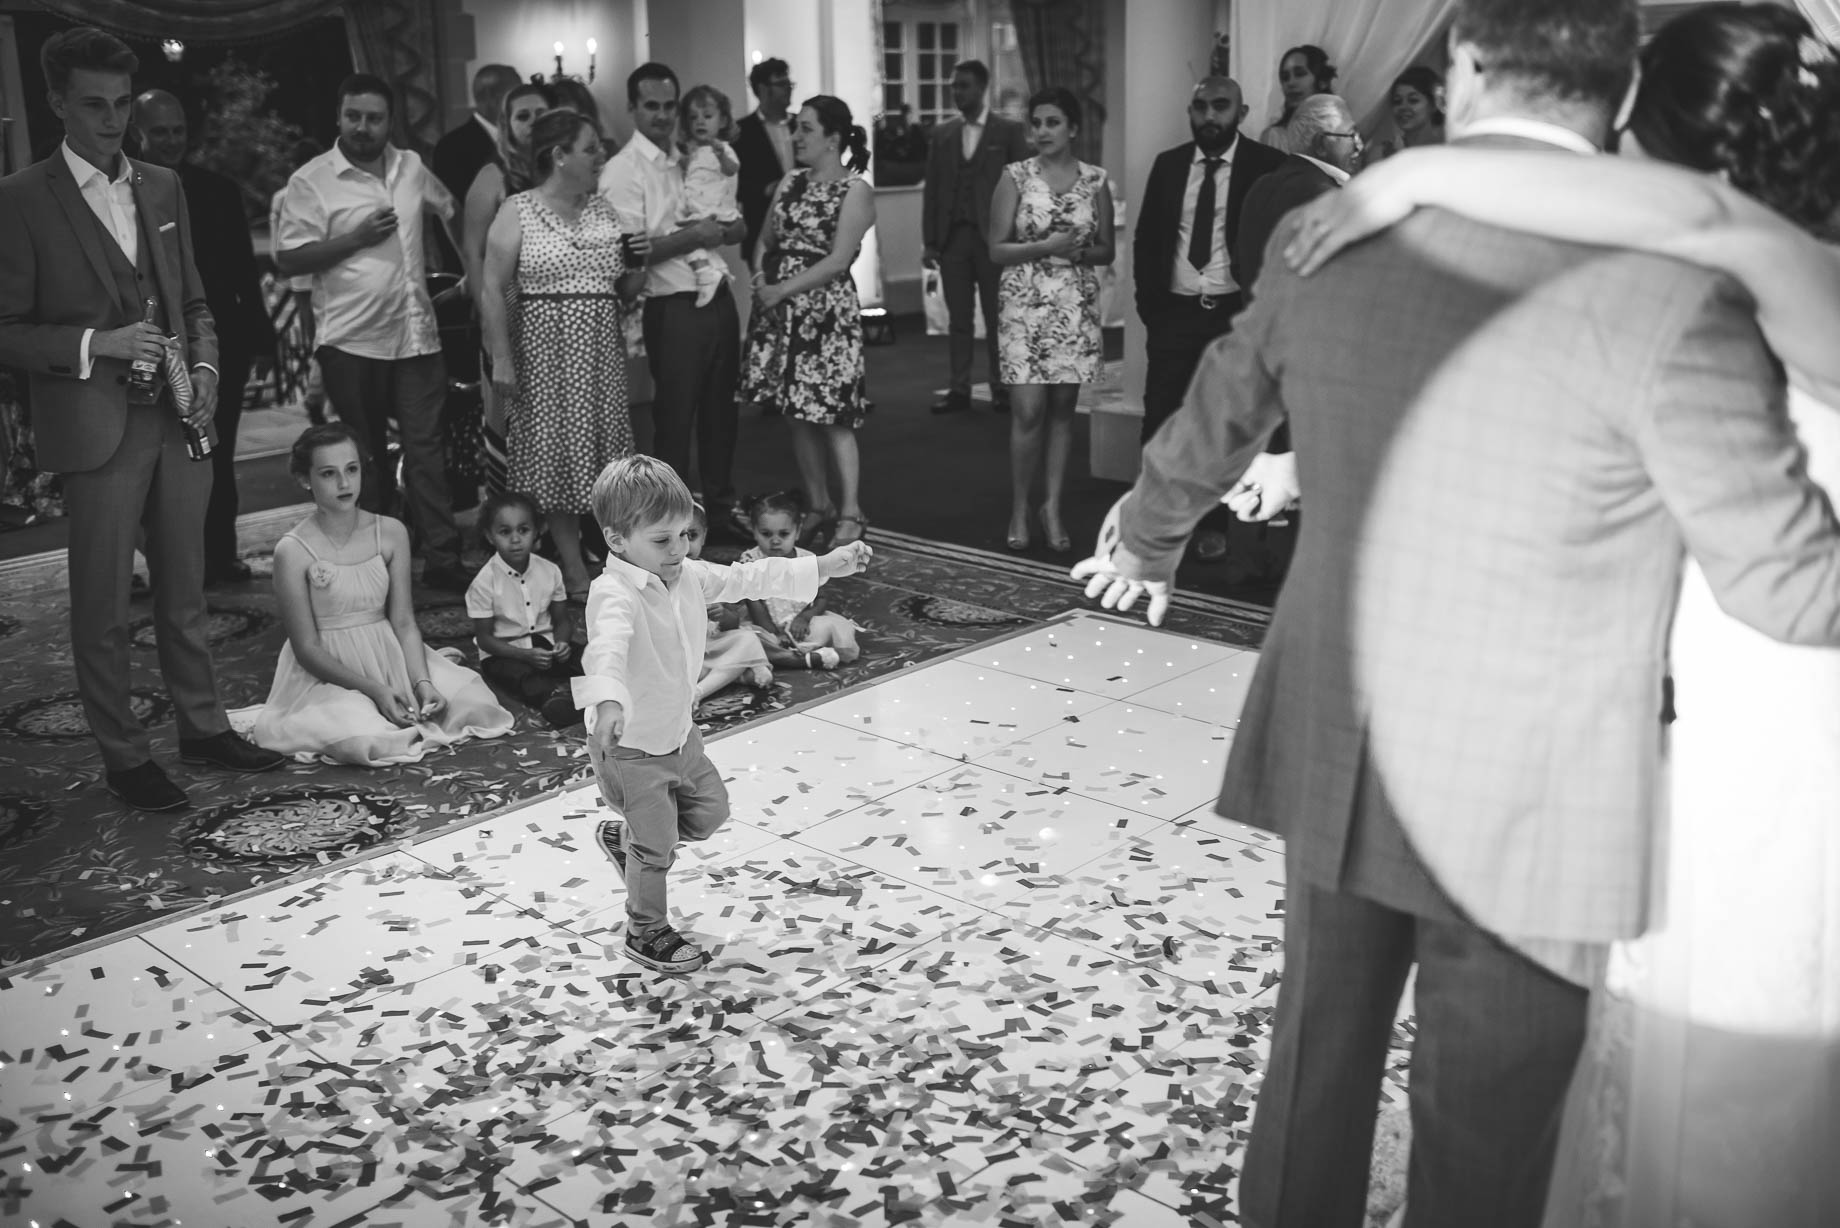 Luton Hoo wedding photography by Guy Collier Photography - Lauren and Gem (177 of 178)